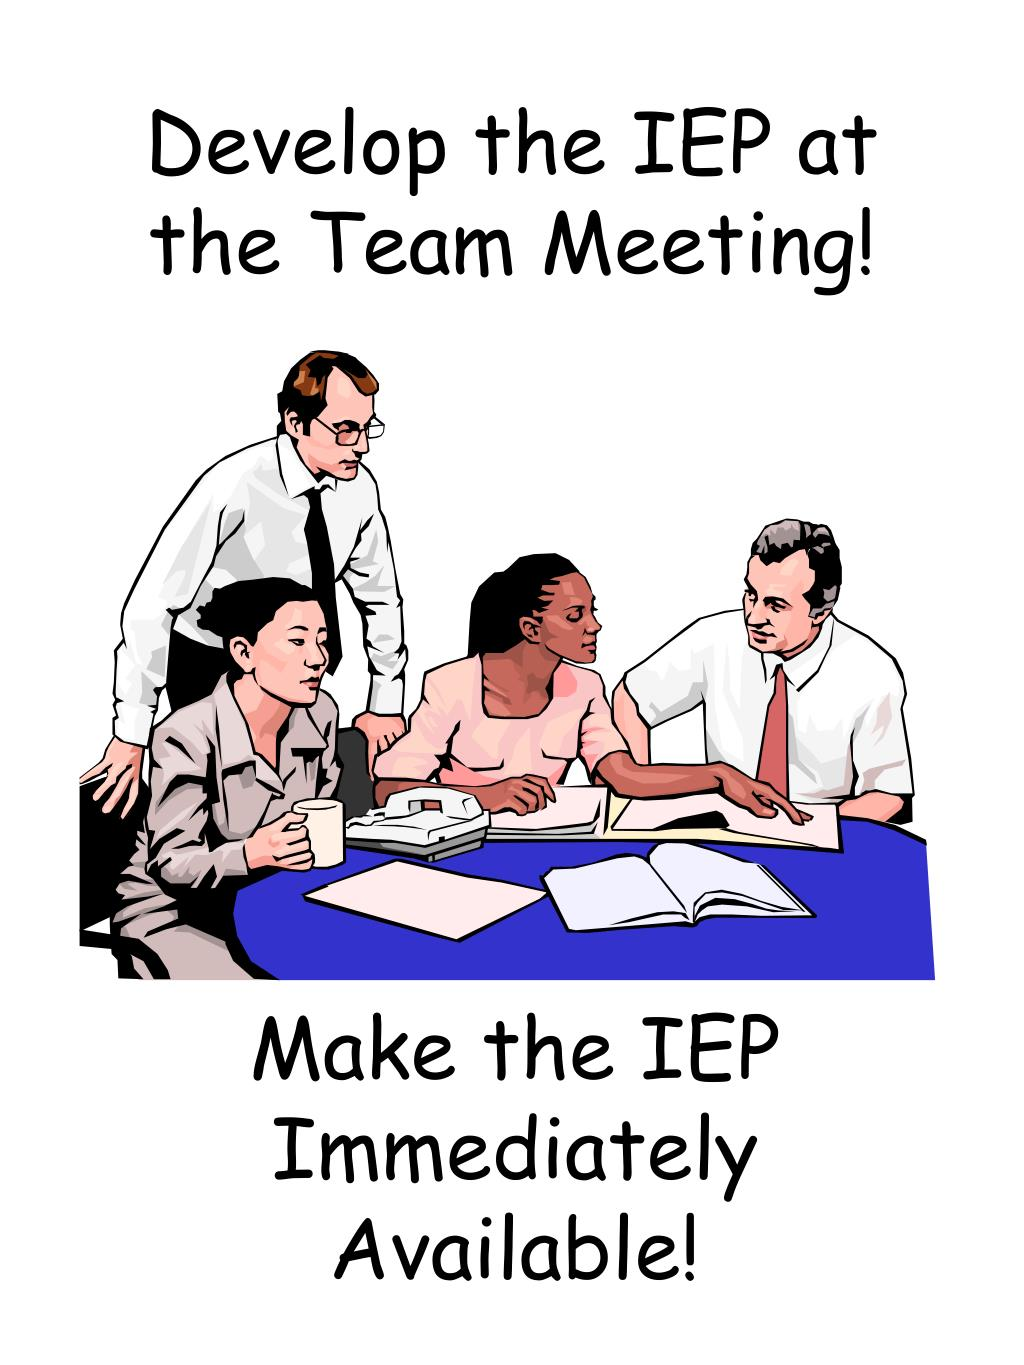 Develop the IEP at the Team Meeting!